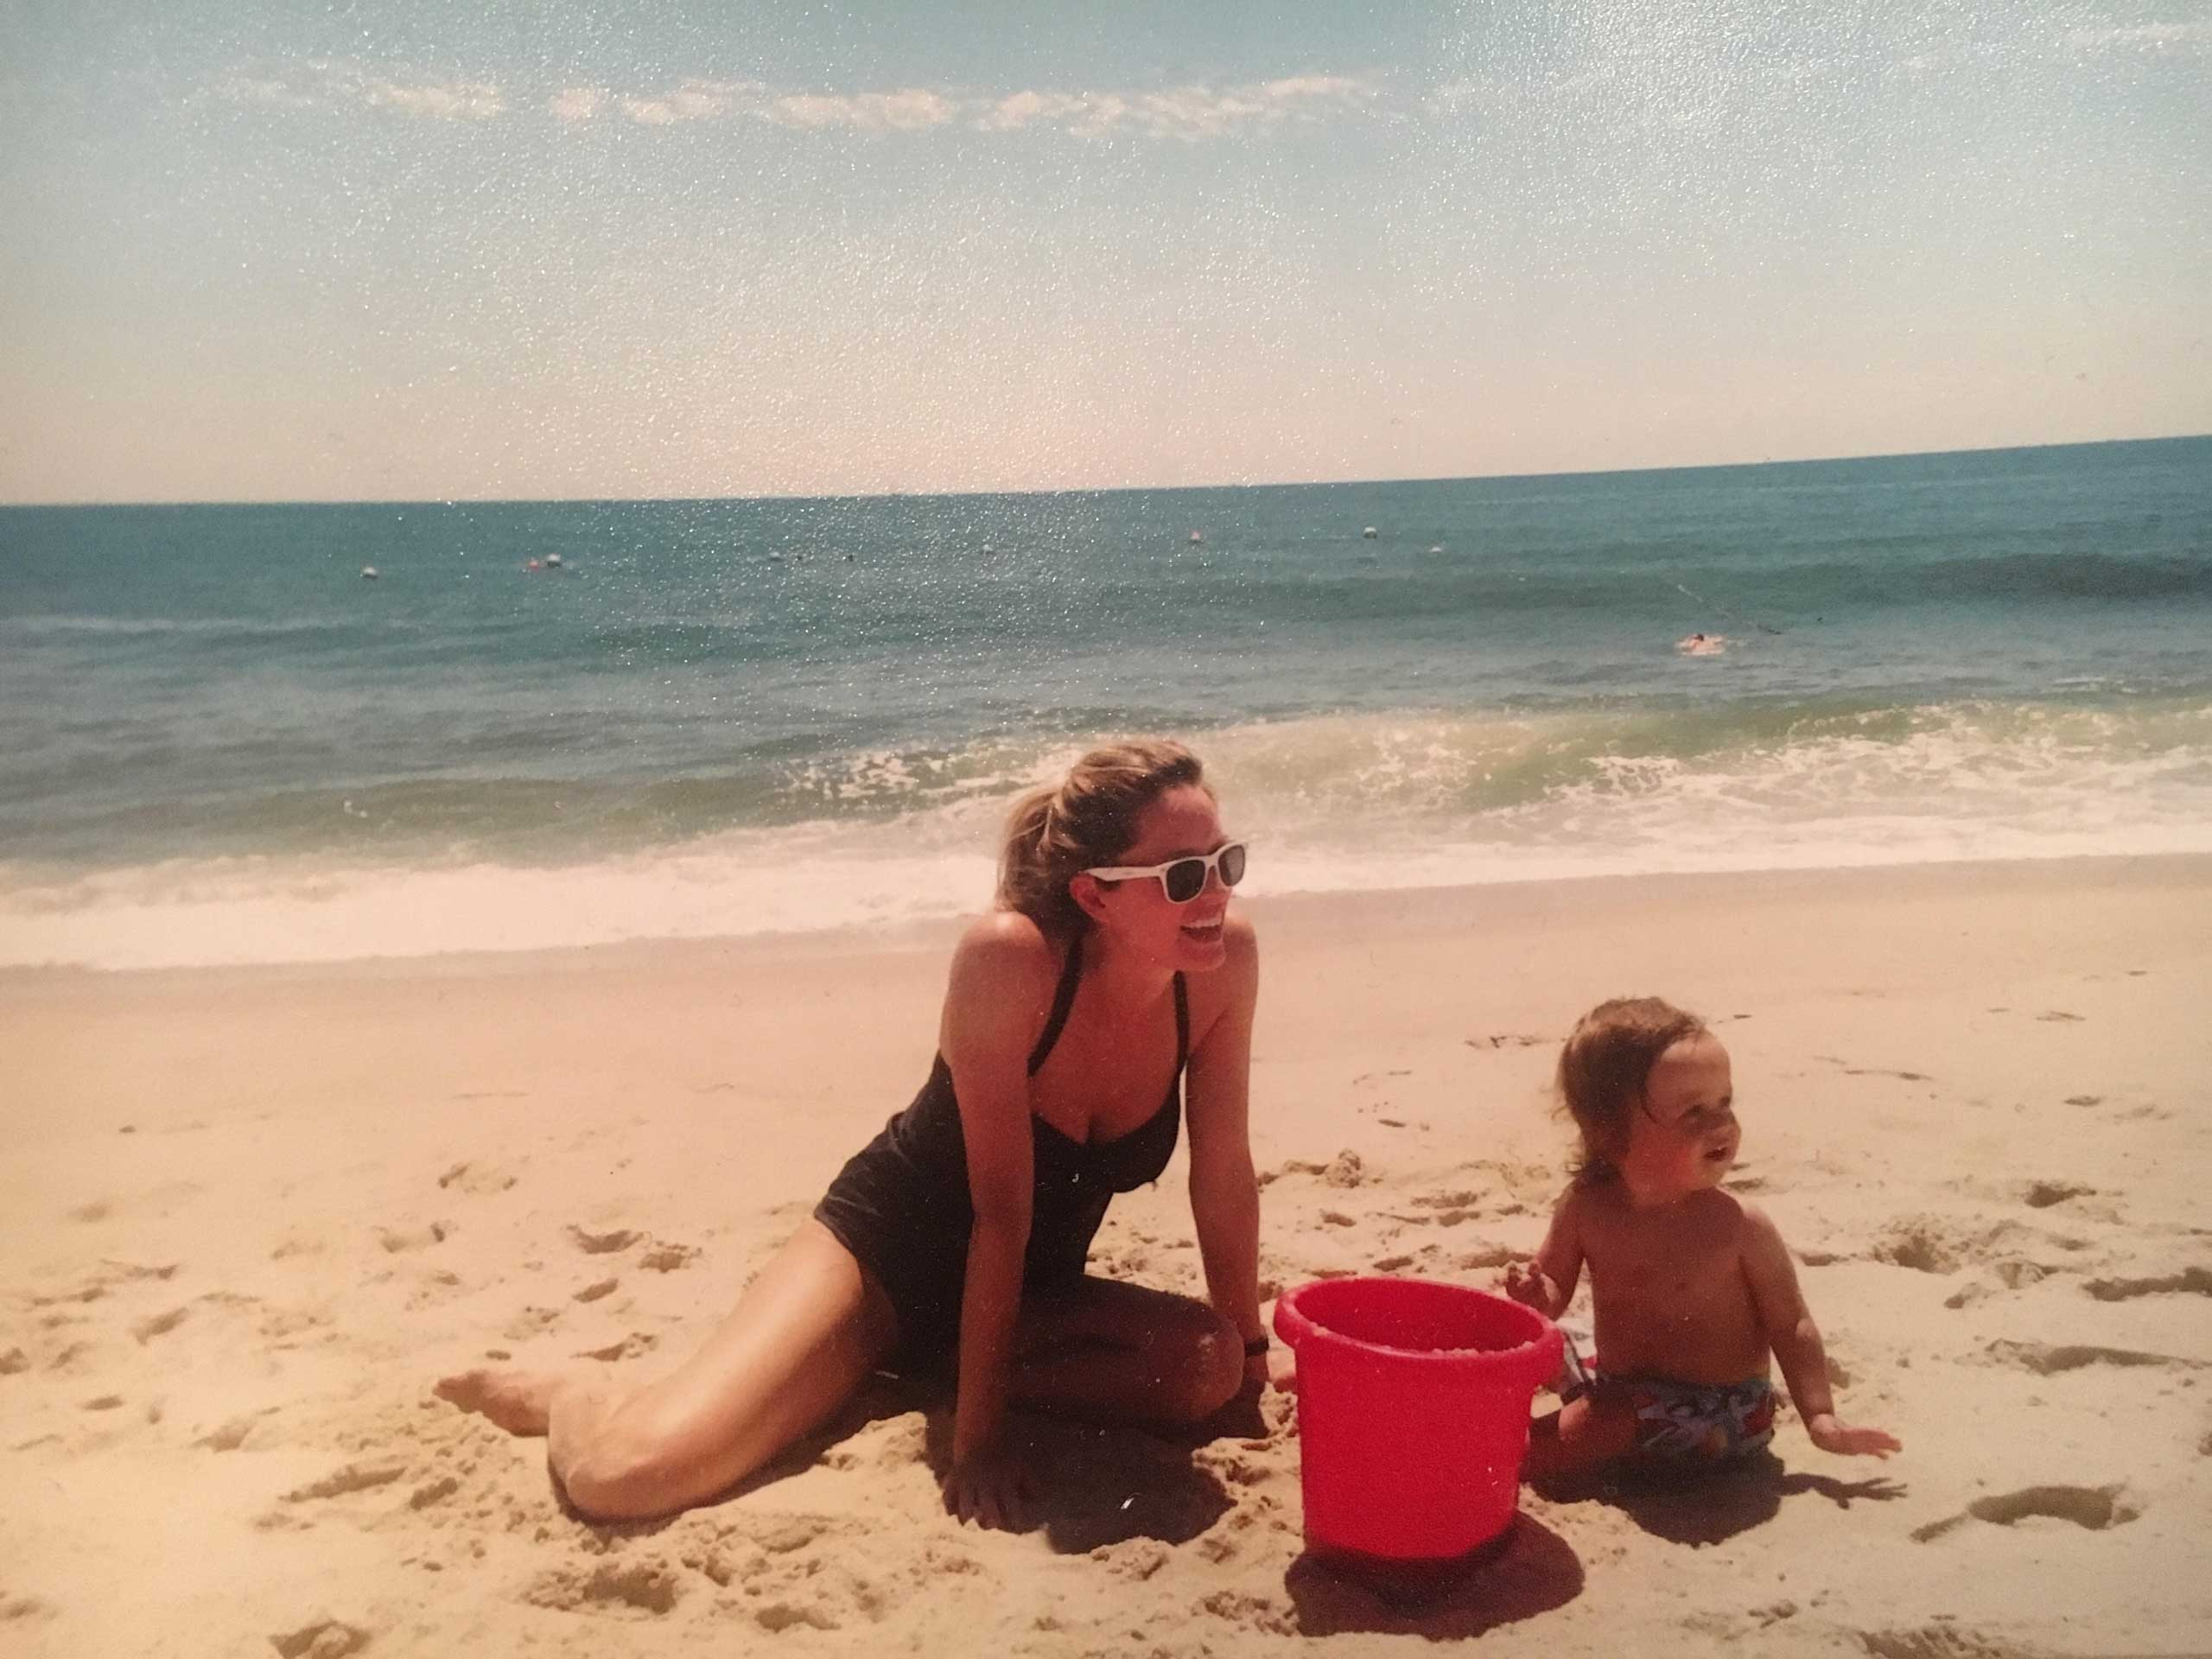 Shannon and Arthur at the beach in Long Island, 2014. Photographed using the Yashica T4 Super camera.